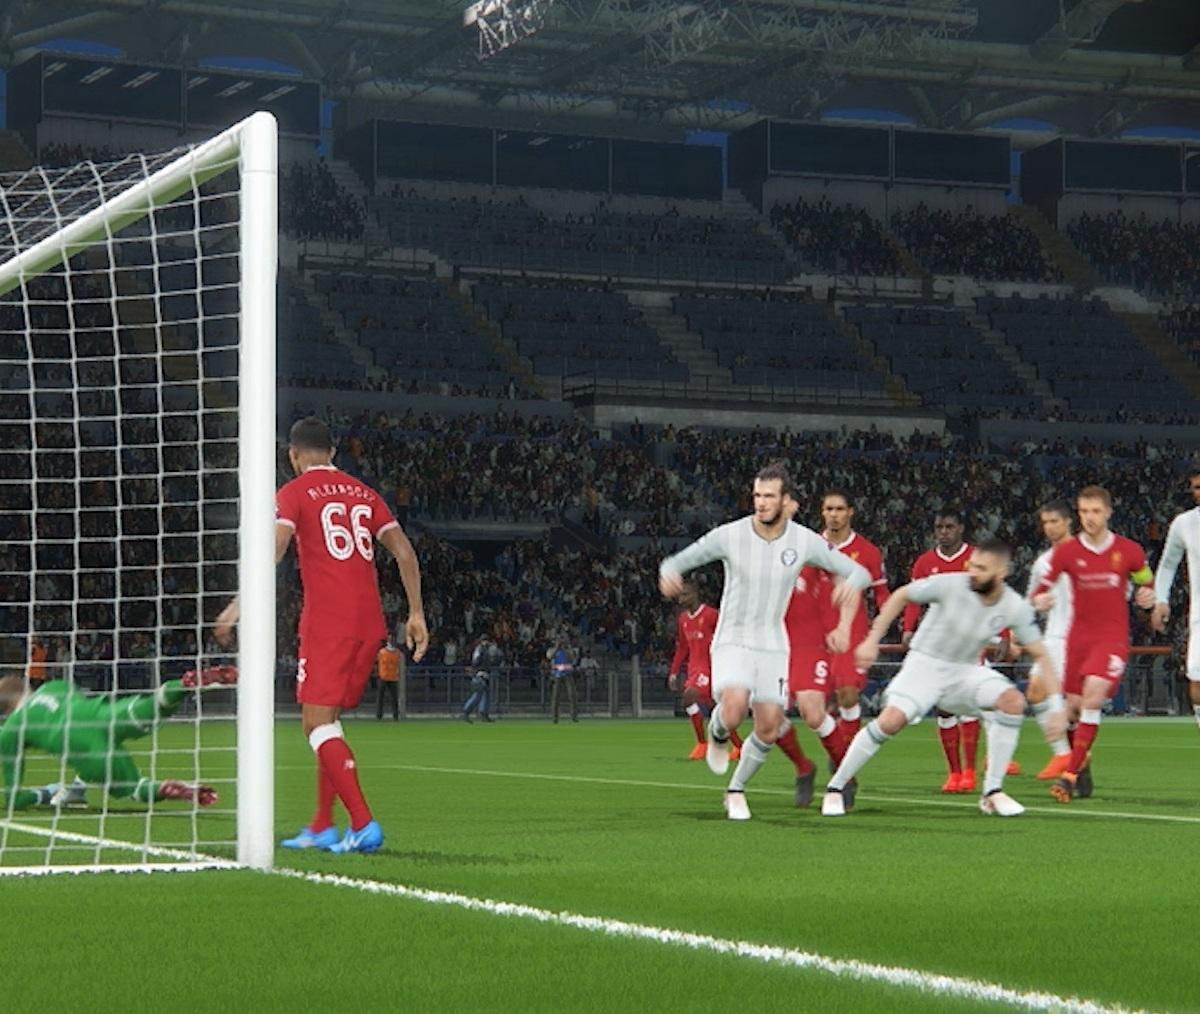 Simming the Champions League Final on PES and FIFA